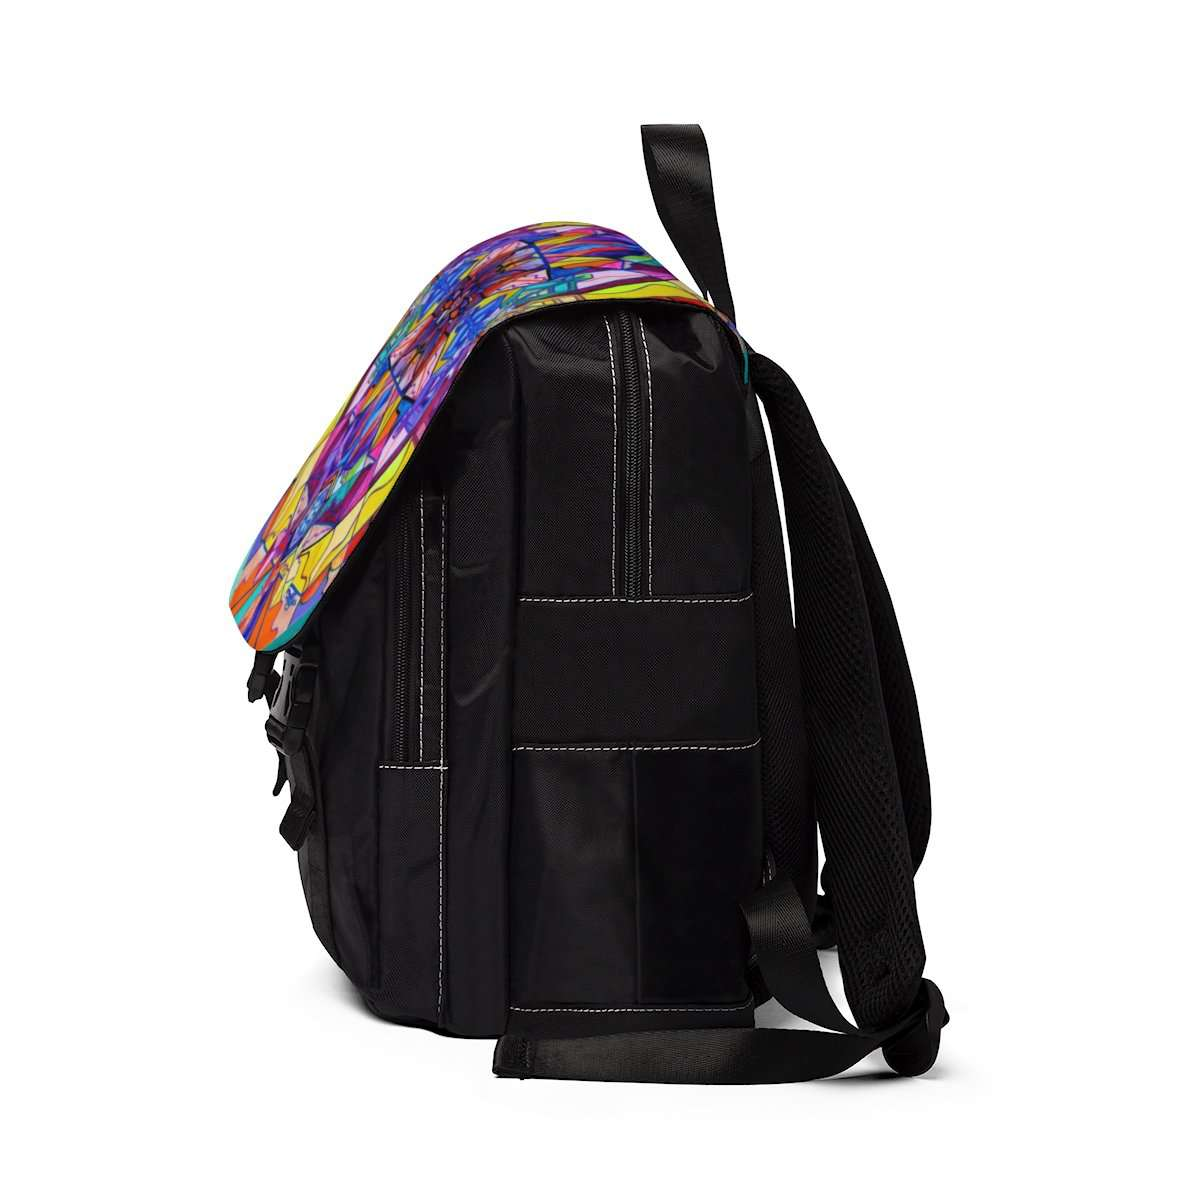 Synchronicity - Unisex Casual Shoulder Backpack